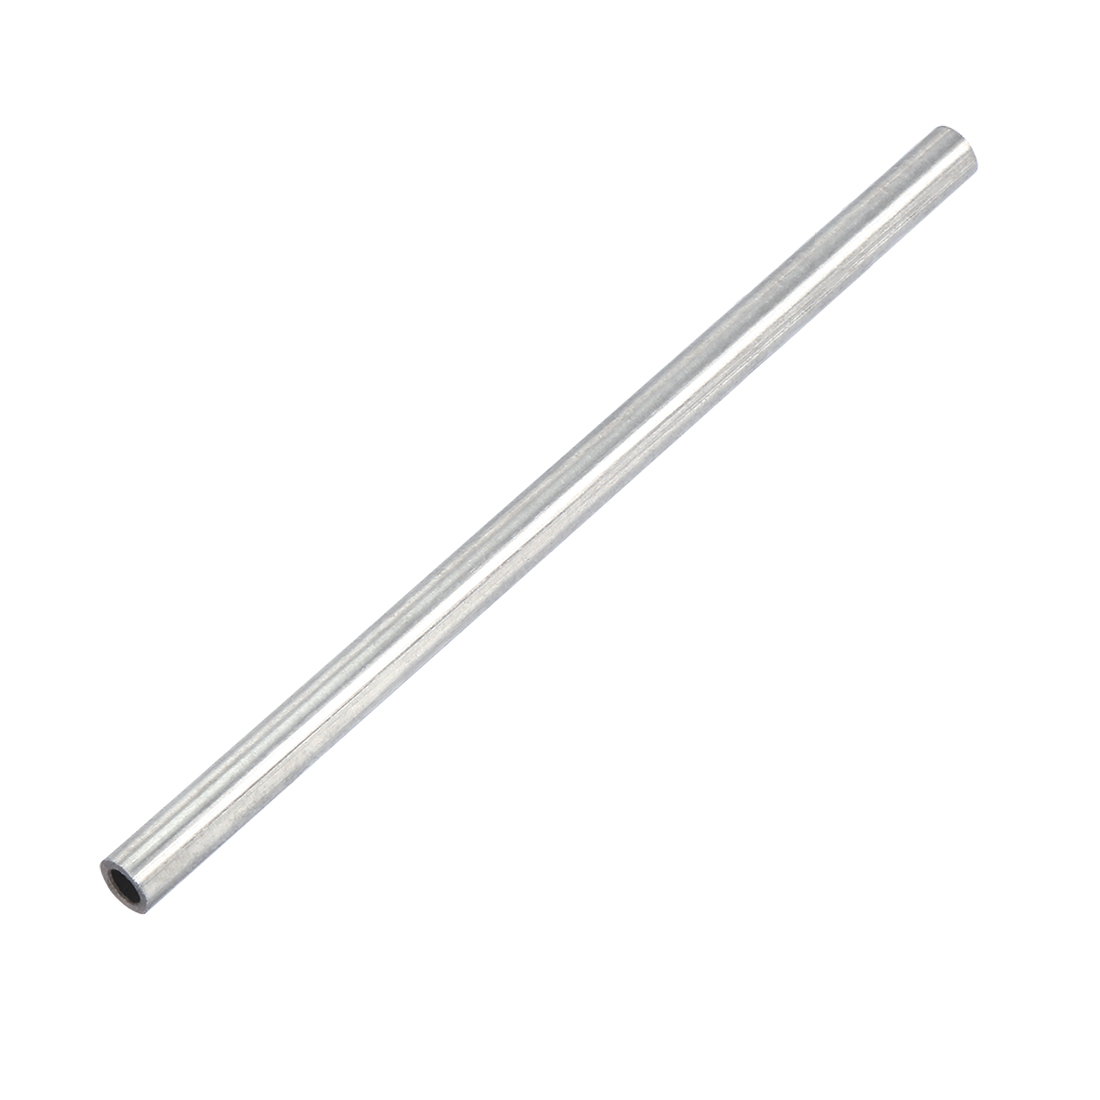 3mmx2mm 304 Stainless Steel Round Shaft Rod Axle 100mm Length for RC Toy Car